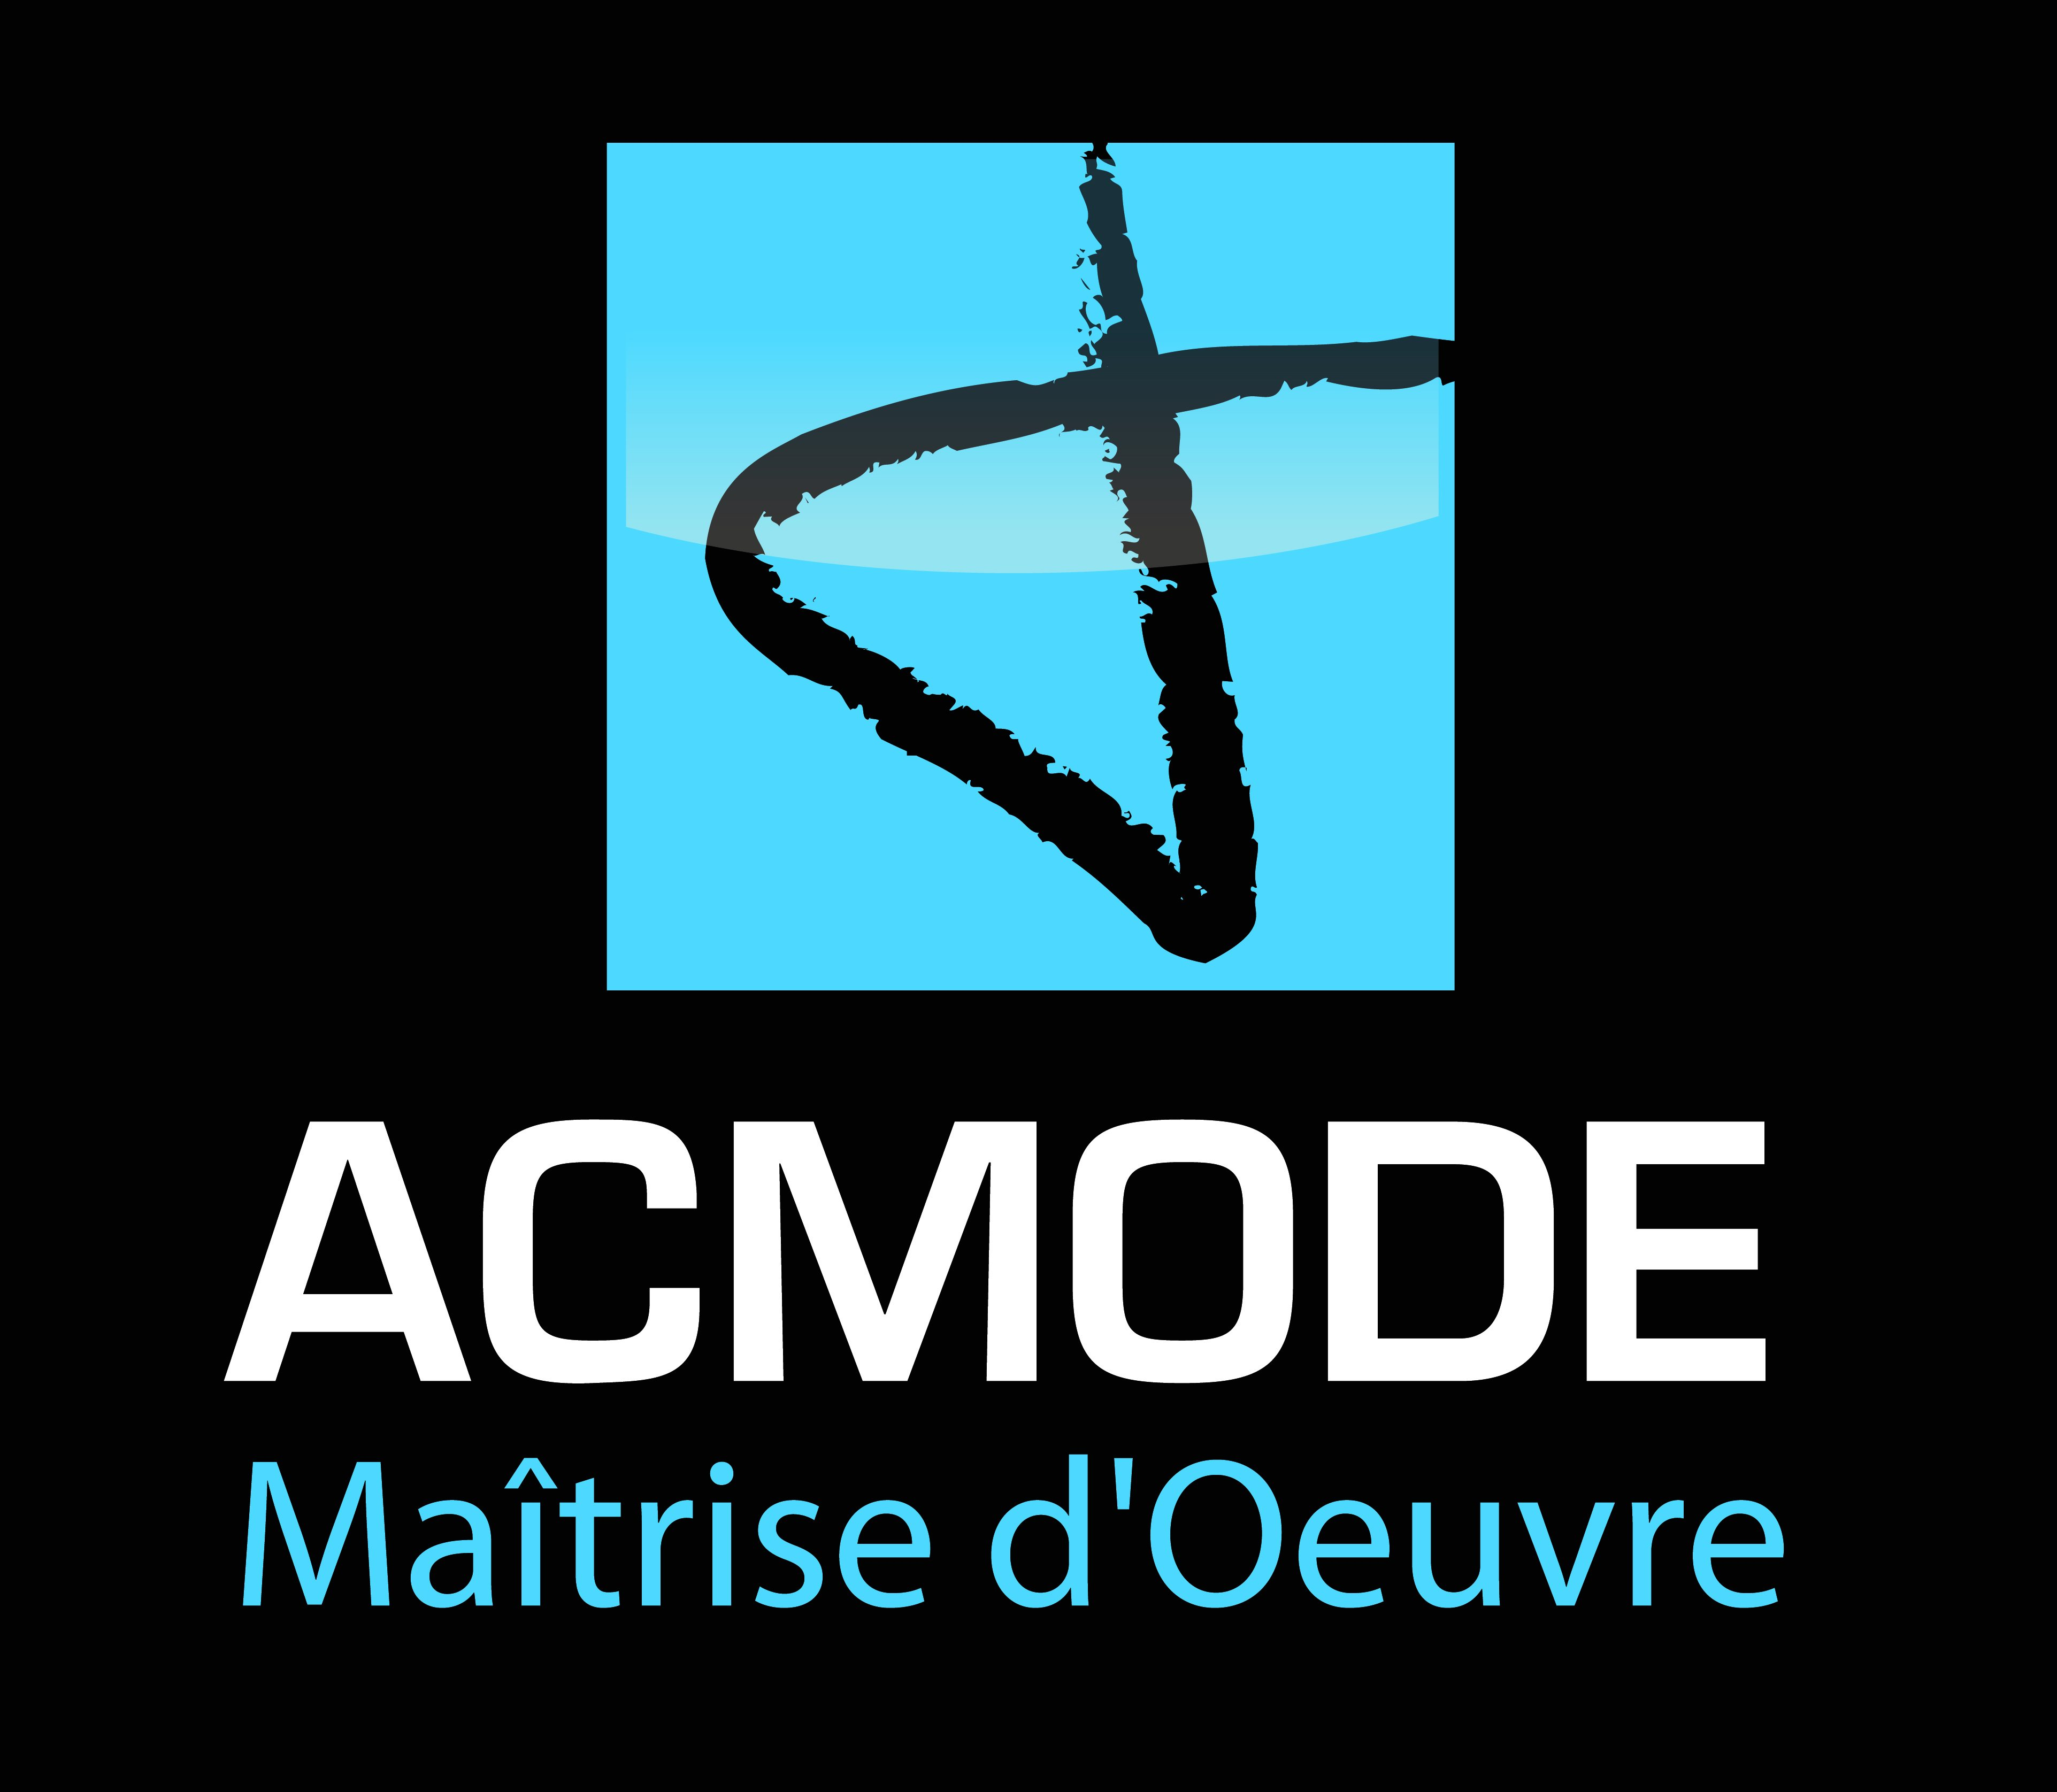 acmode